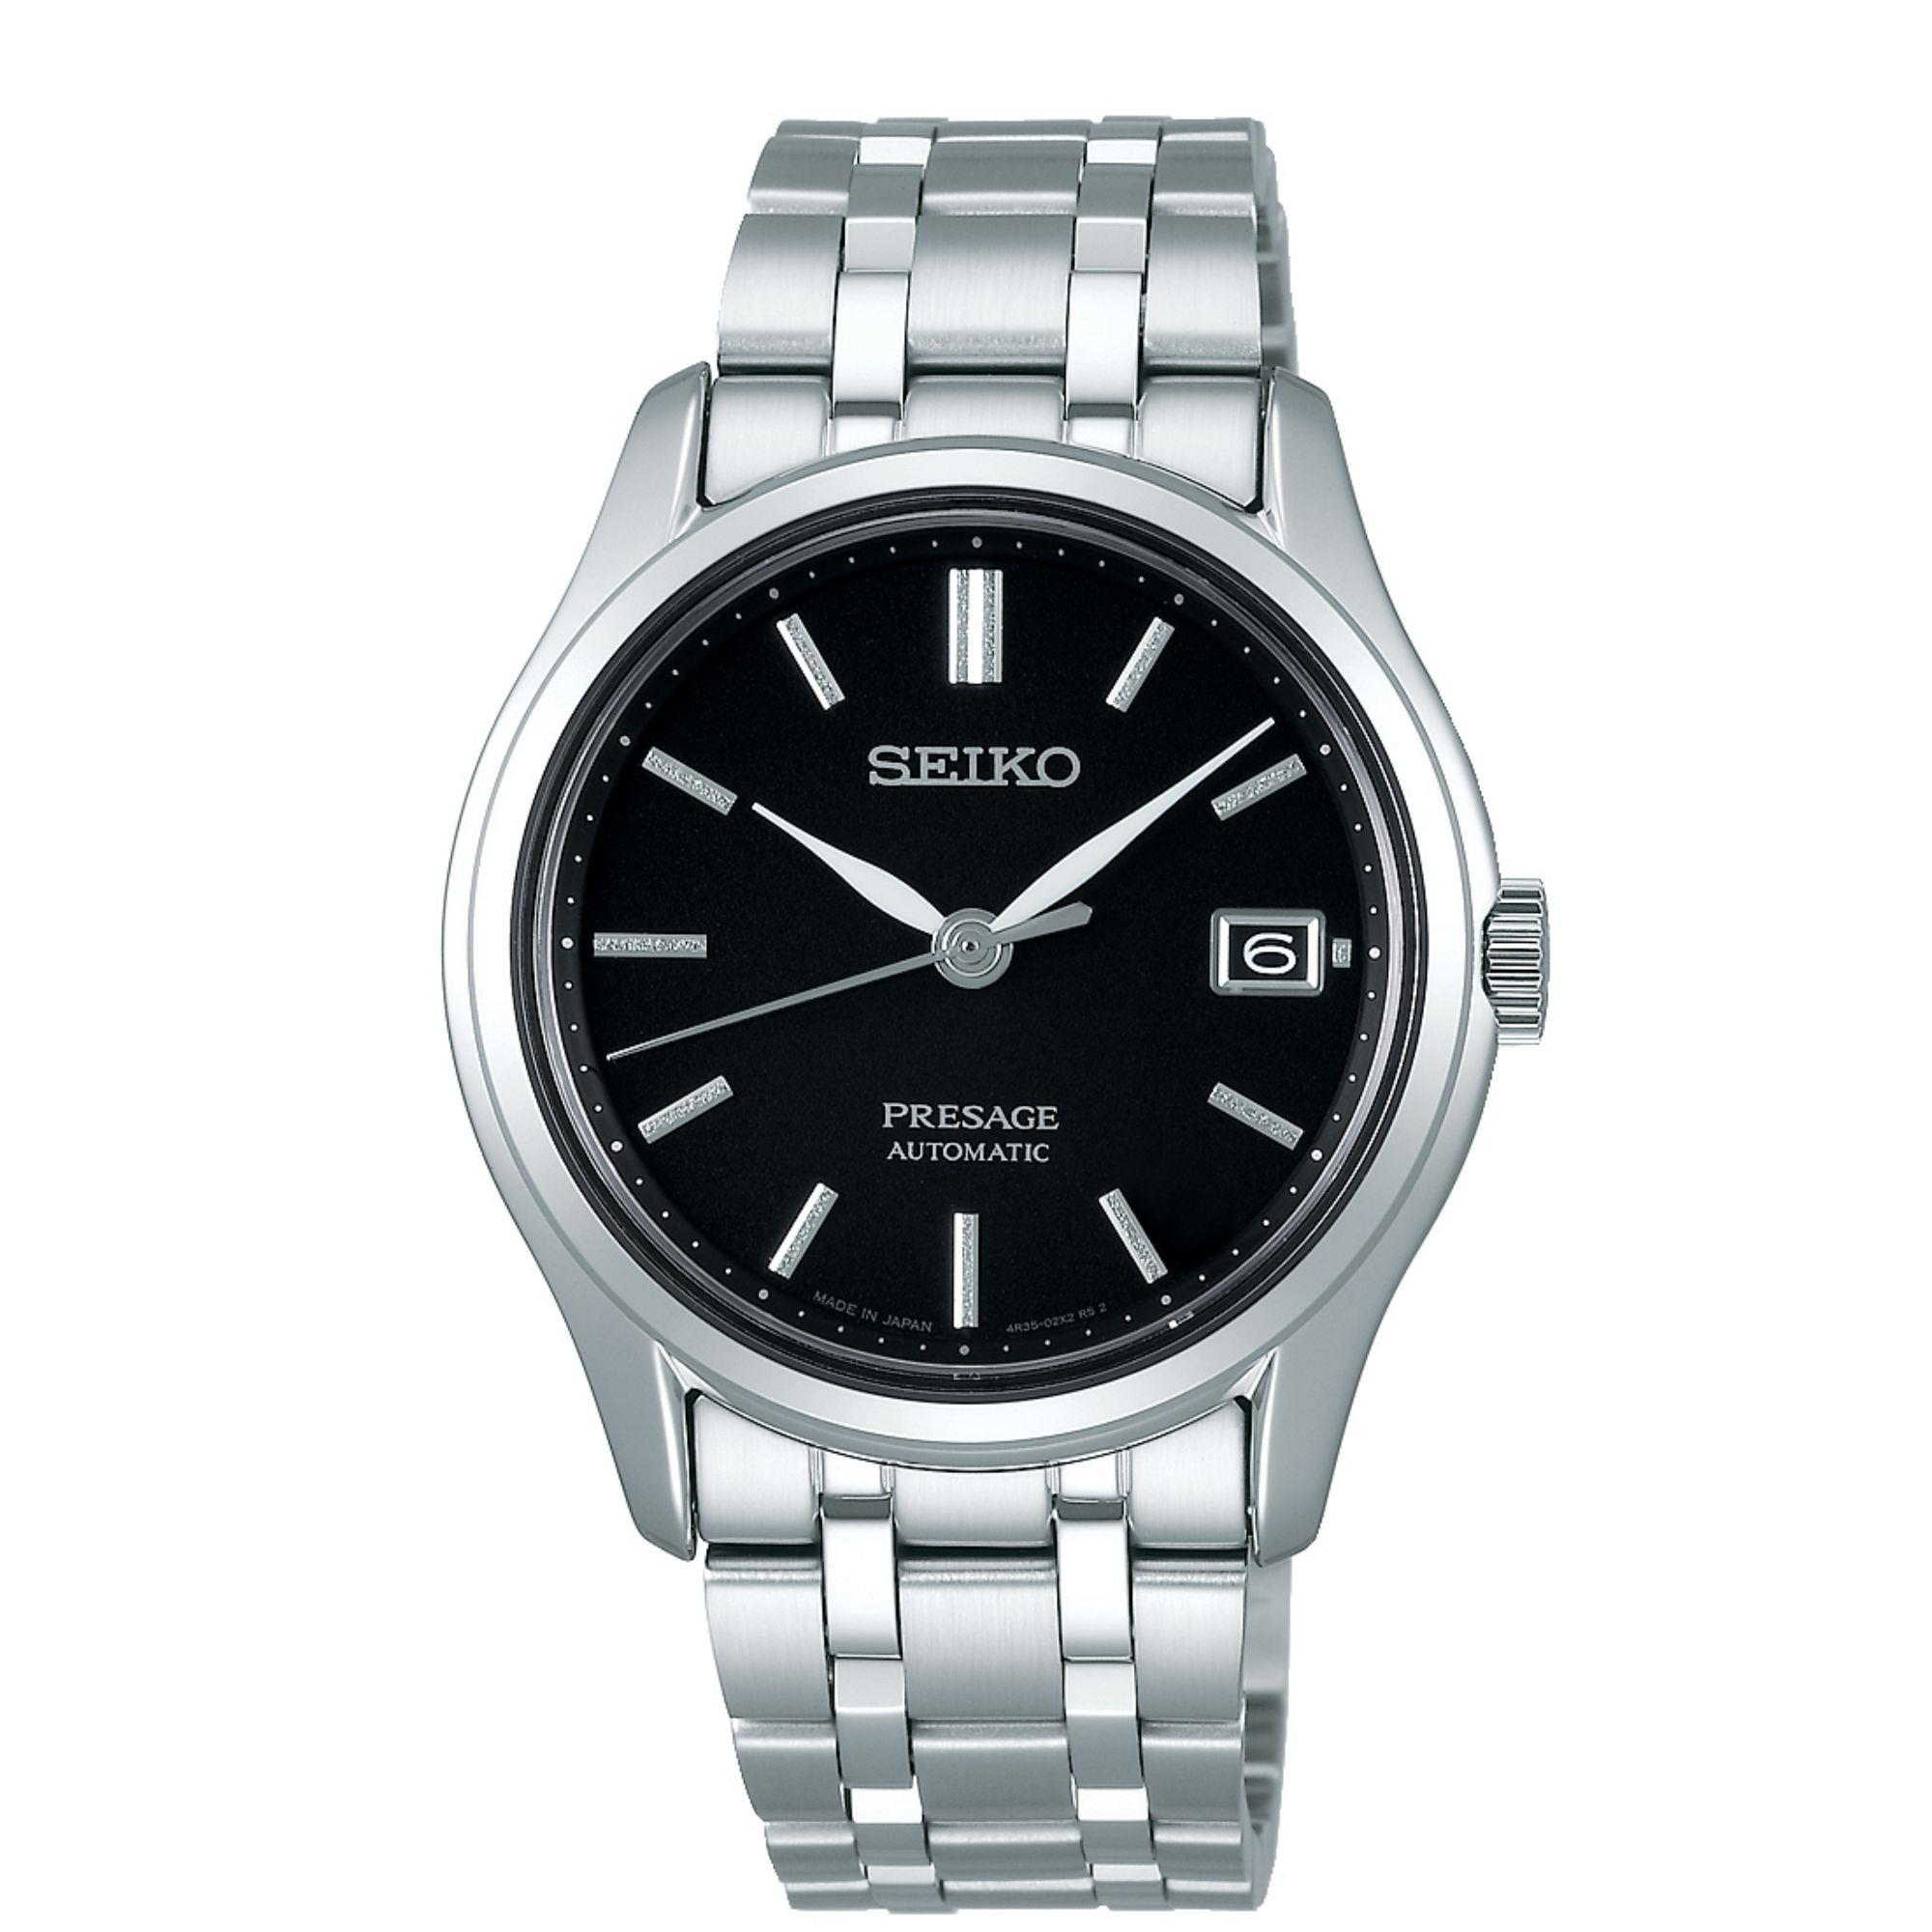 Seiko Presage Zen Garden Automatic Black Dial Silver Stainless Steel Men's Watch SRPD99J1